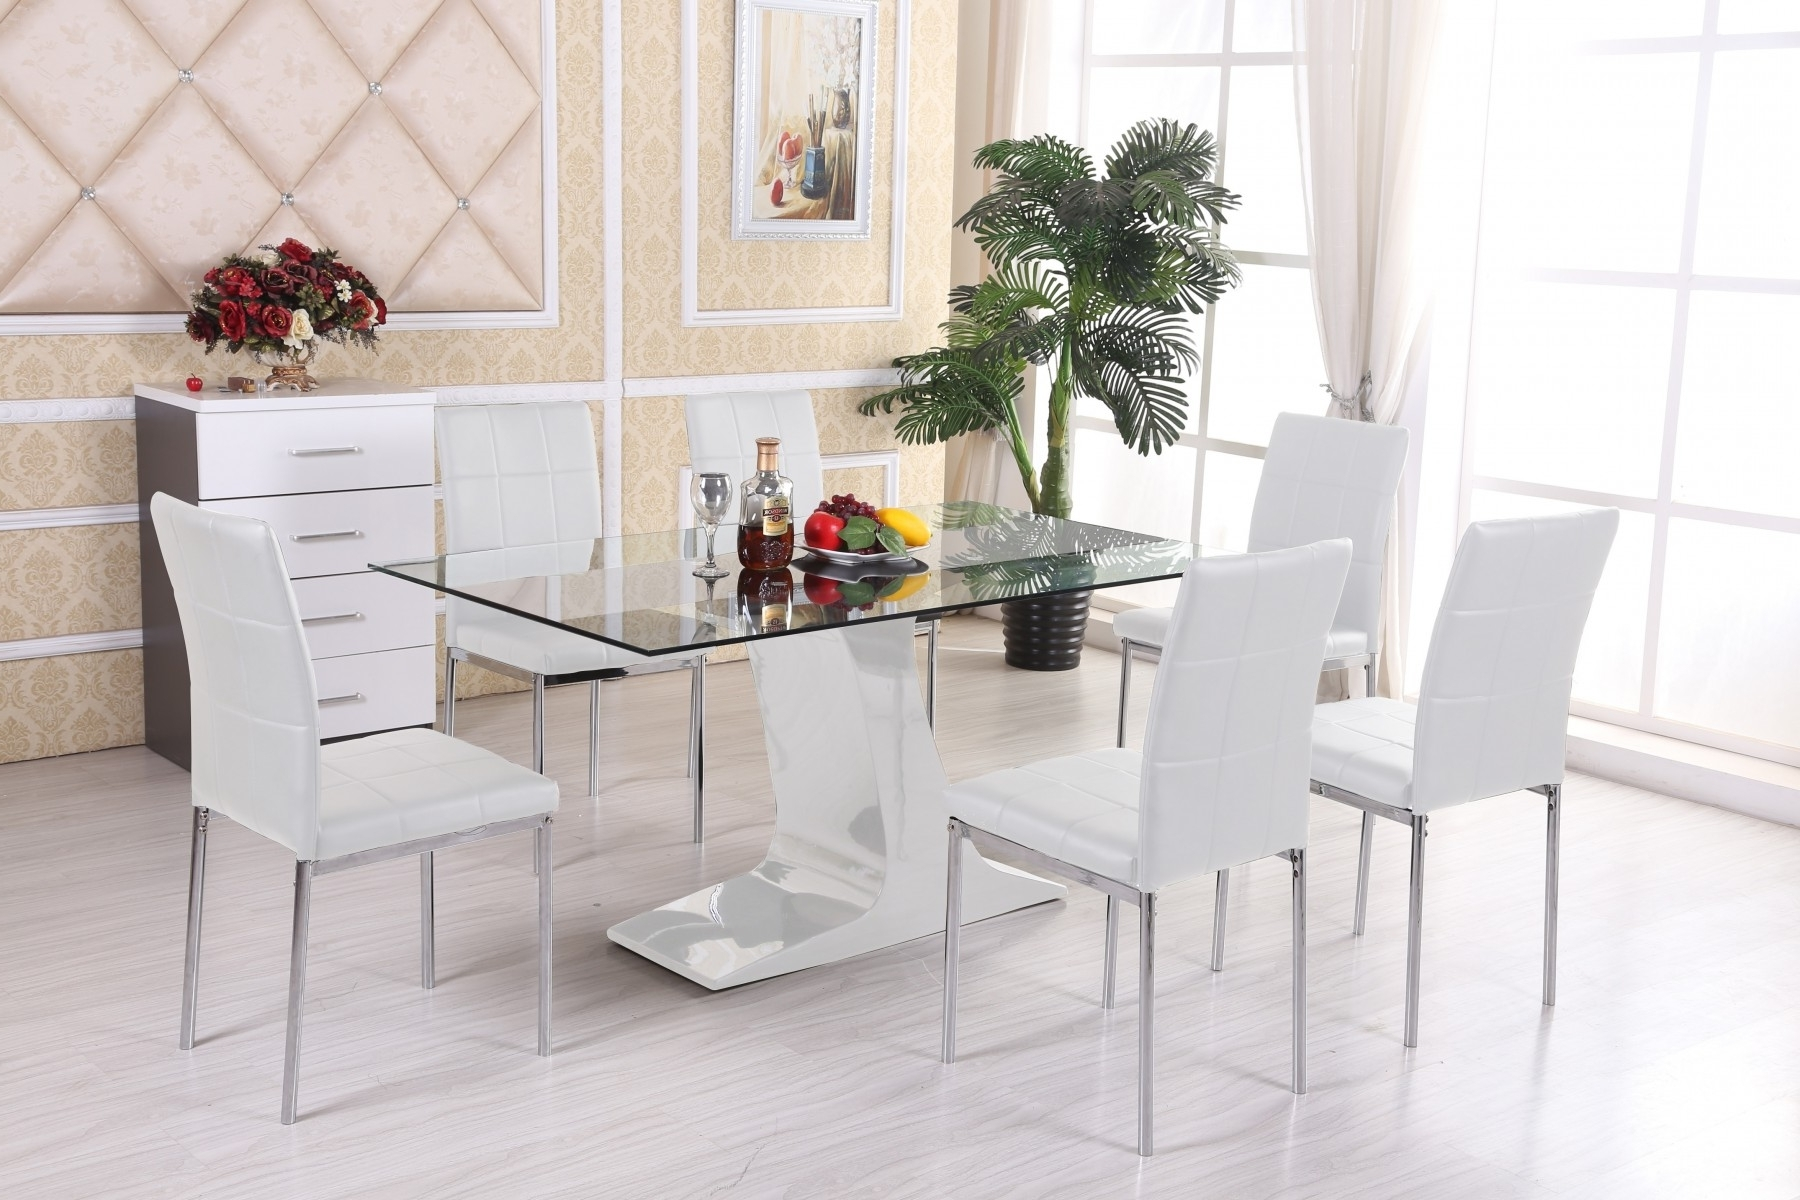 Glass Dining Tables With 6 Chairs Pertaining To Most Recently Released 4 Optimal Choices In Glass Dining Table And Chairs – Blogbeen (View 11 of 25)